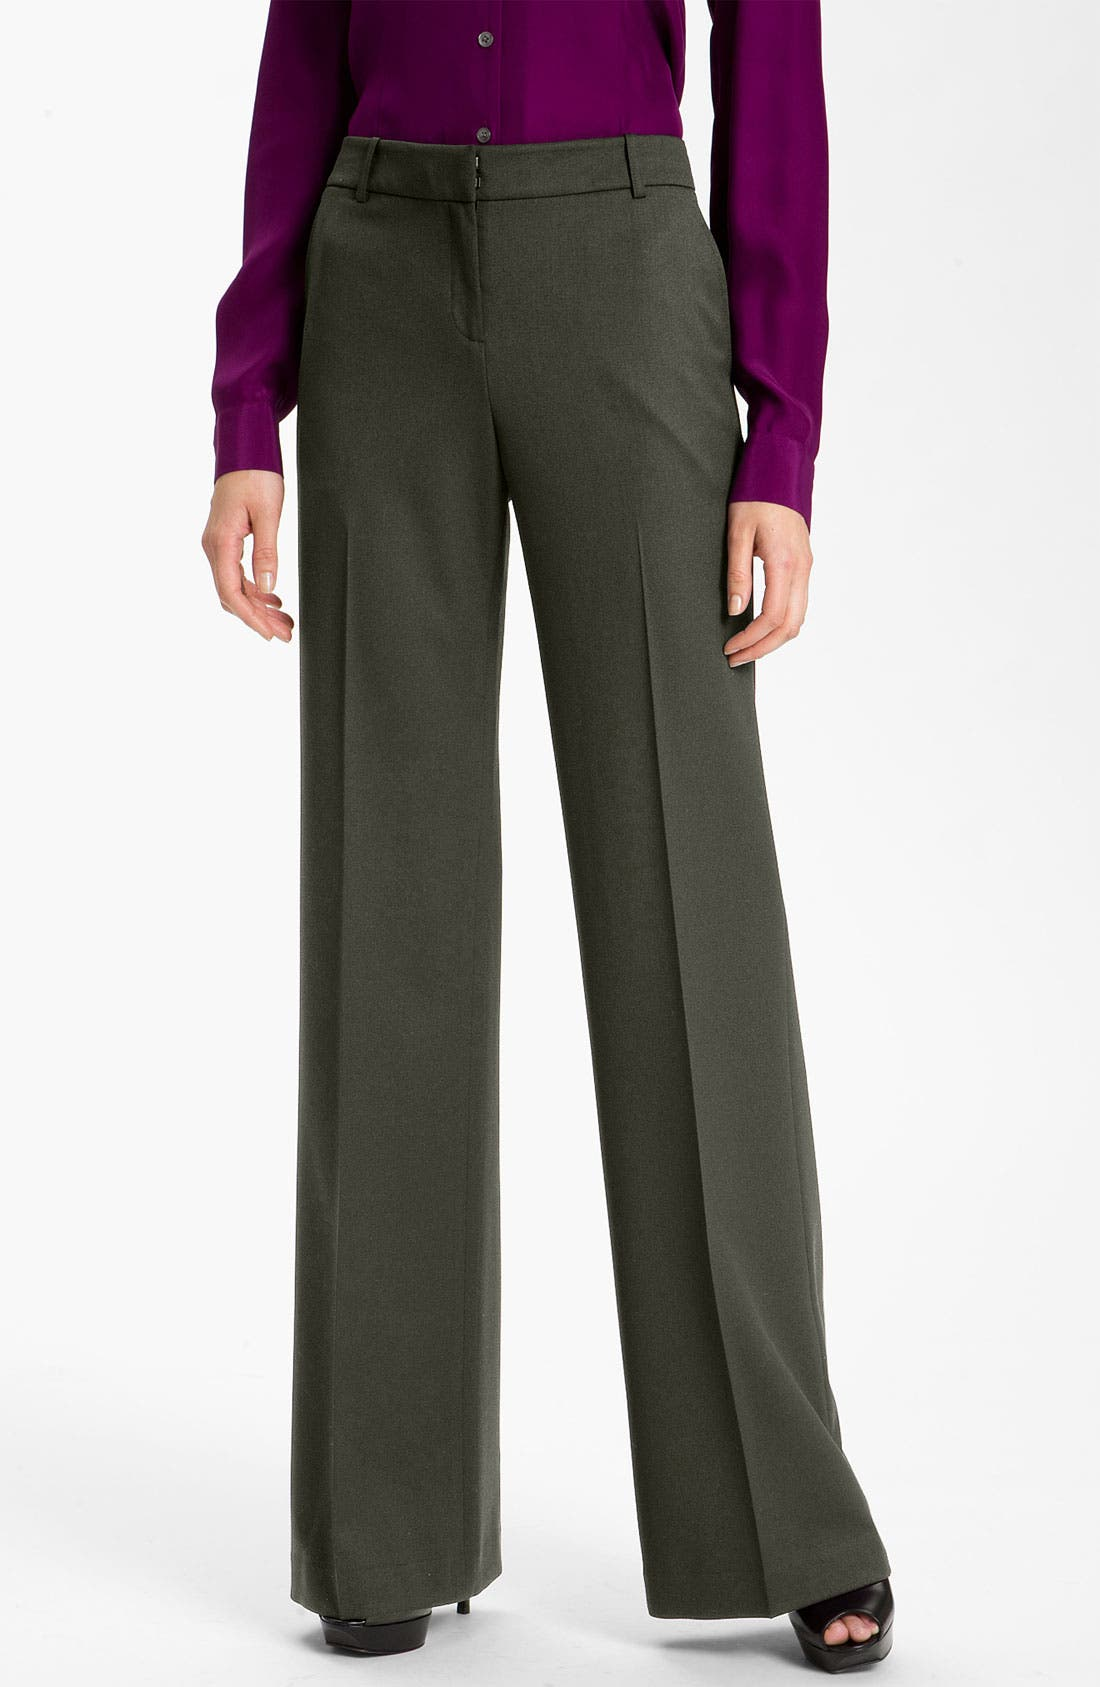 Alternate Image 1 Selected - Lafayette 148 New York Stretch Wool Pants (Petite)